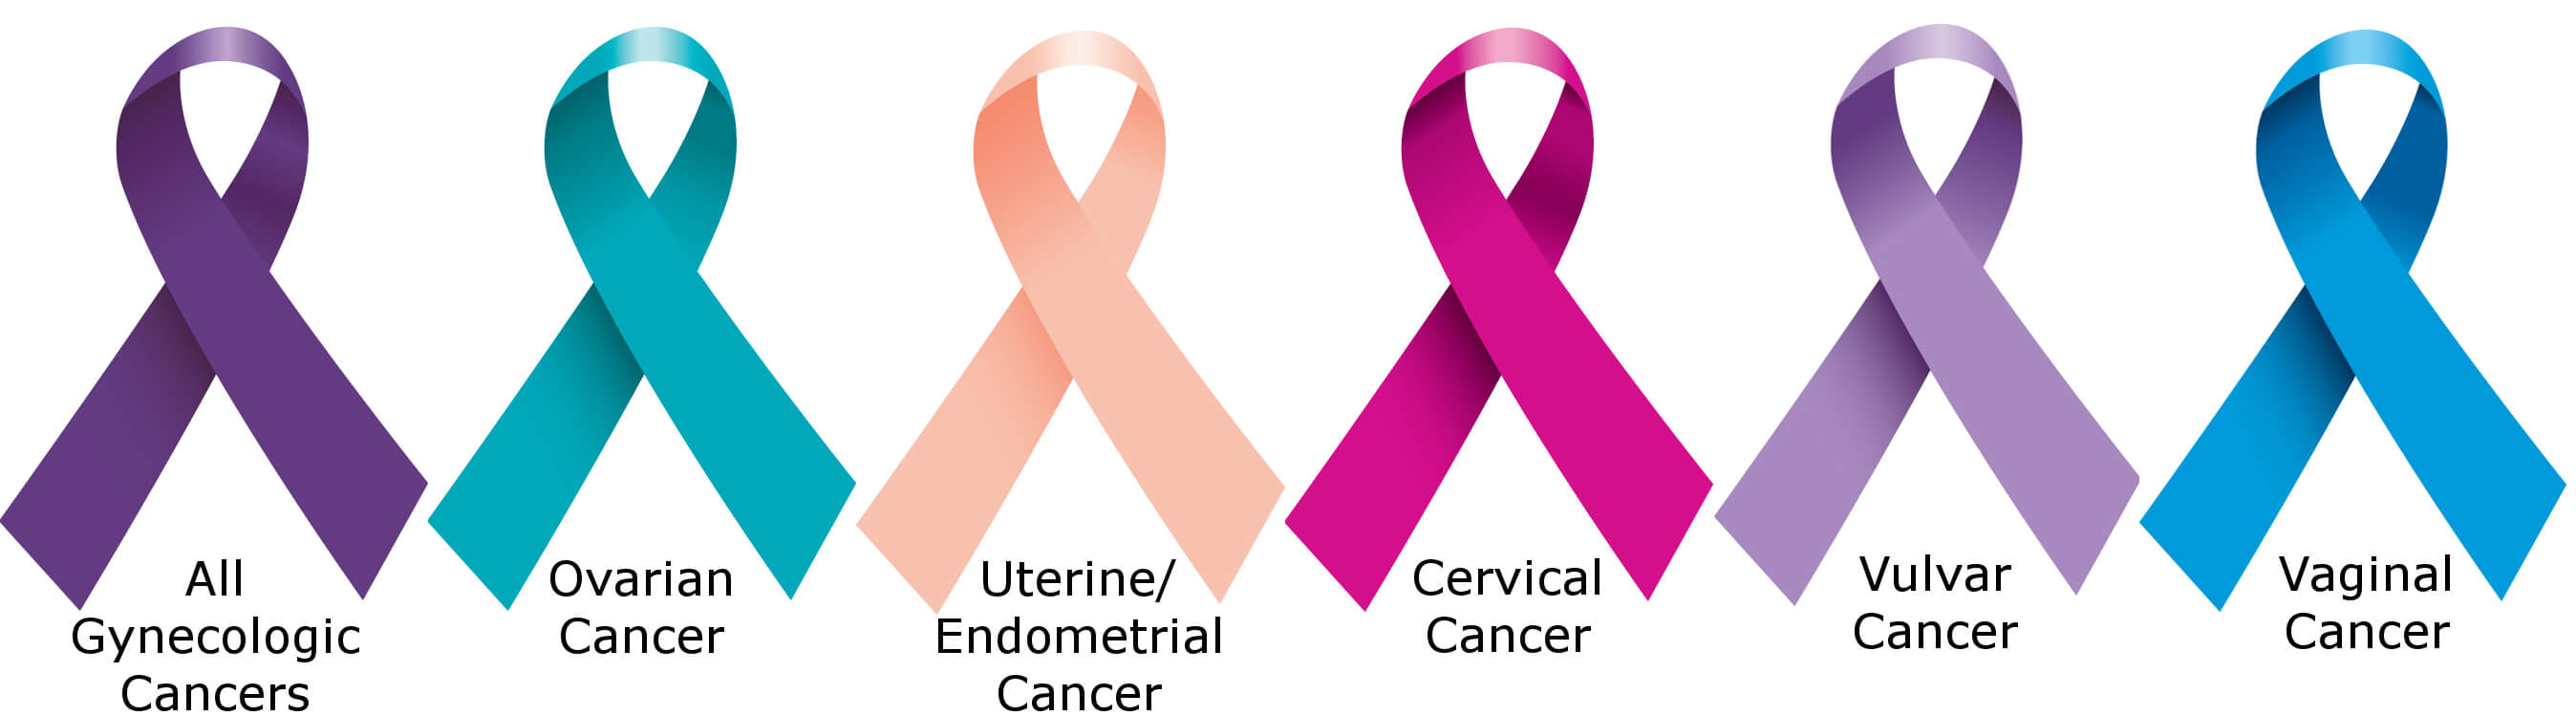 gynecological cancers we treat at gynecologic oncology institute